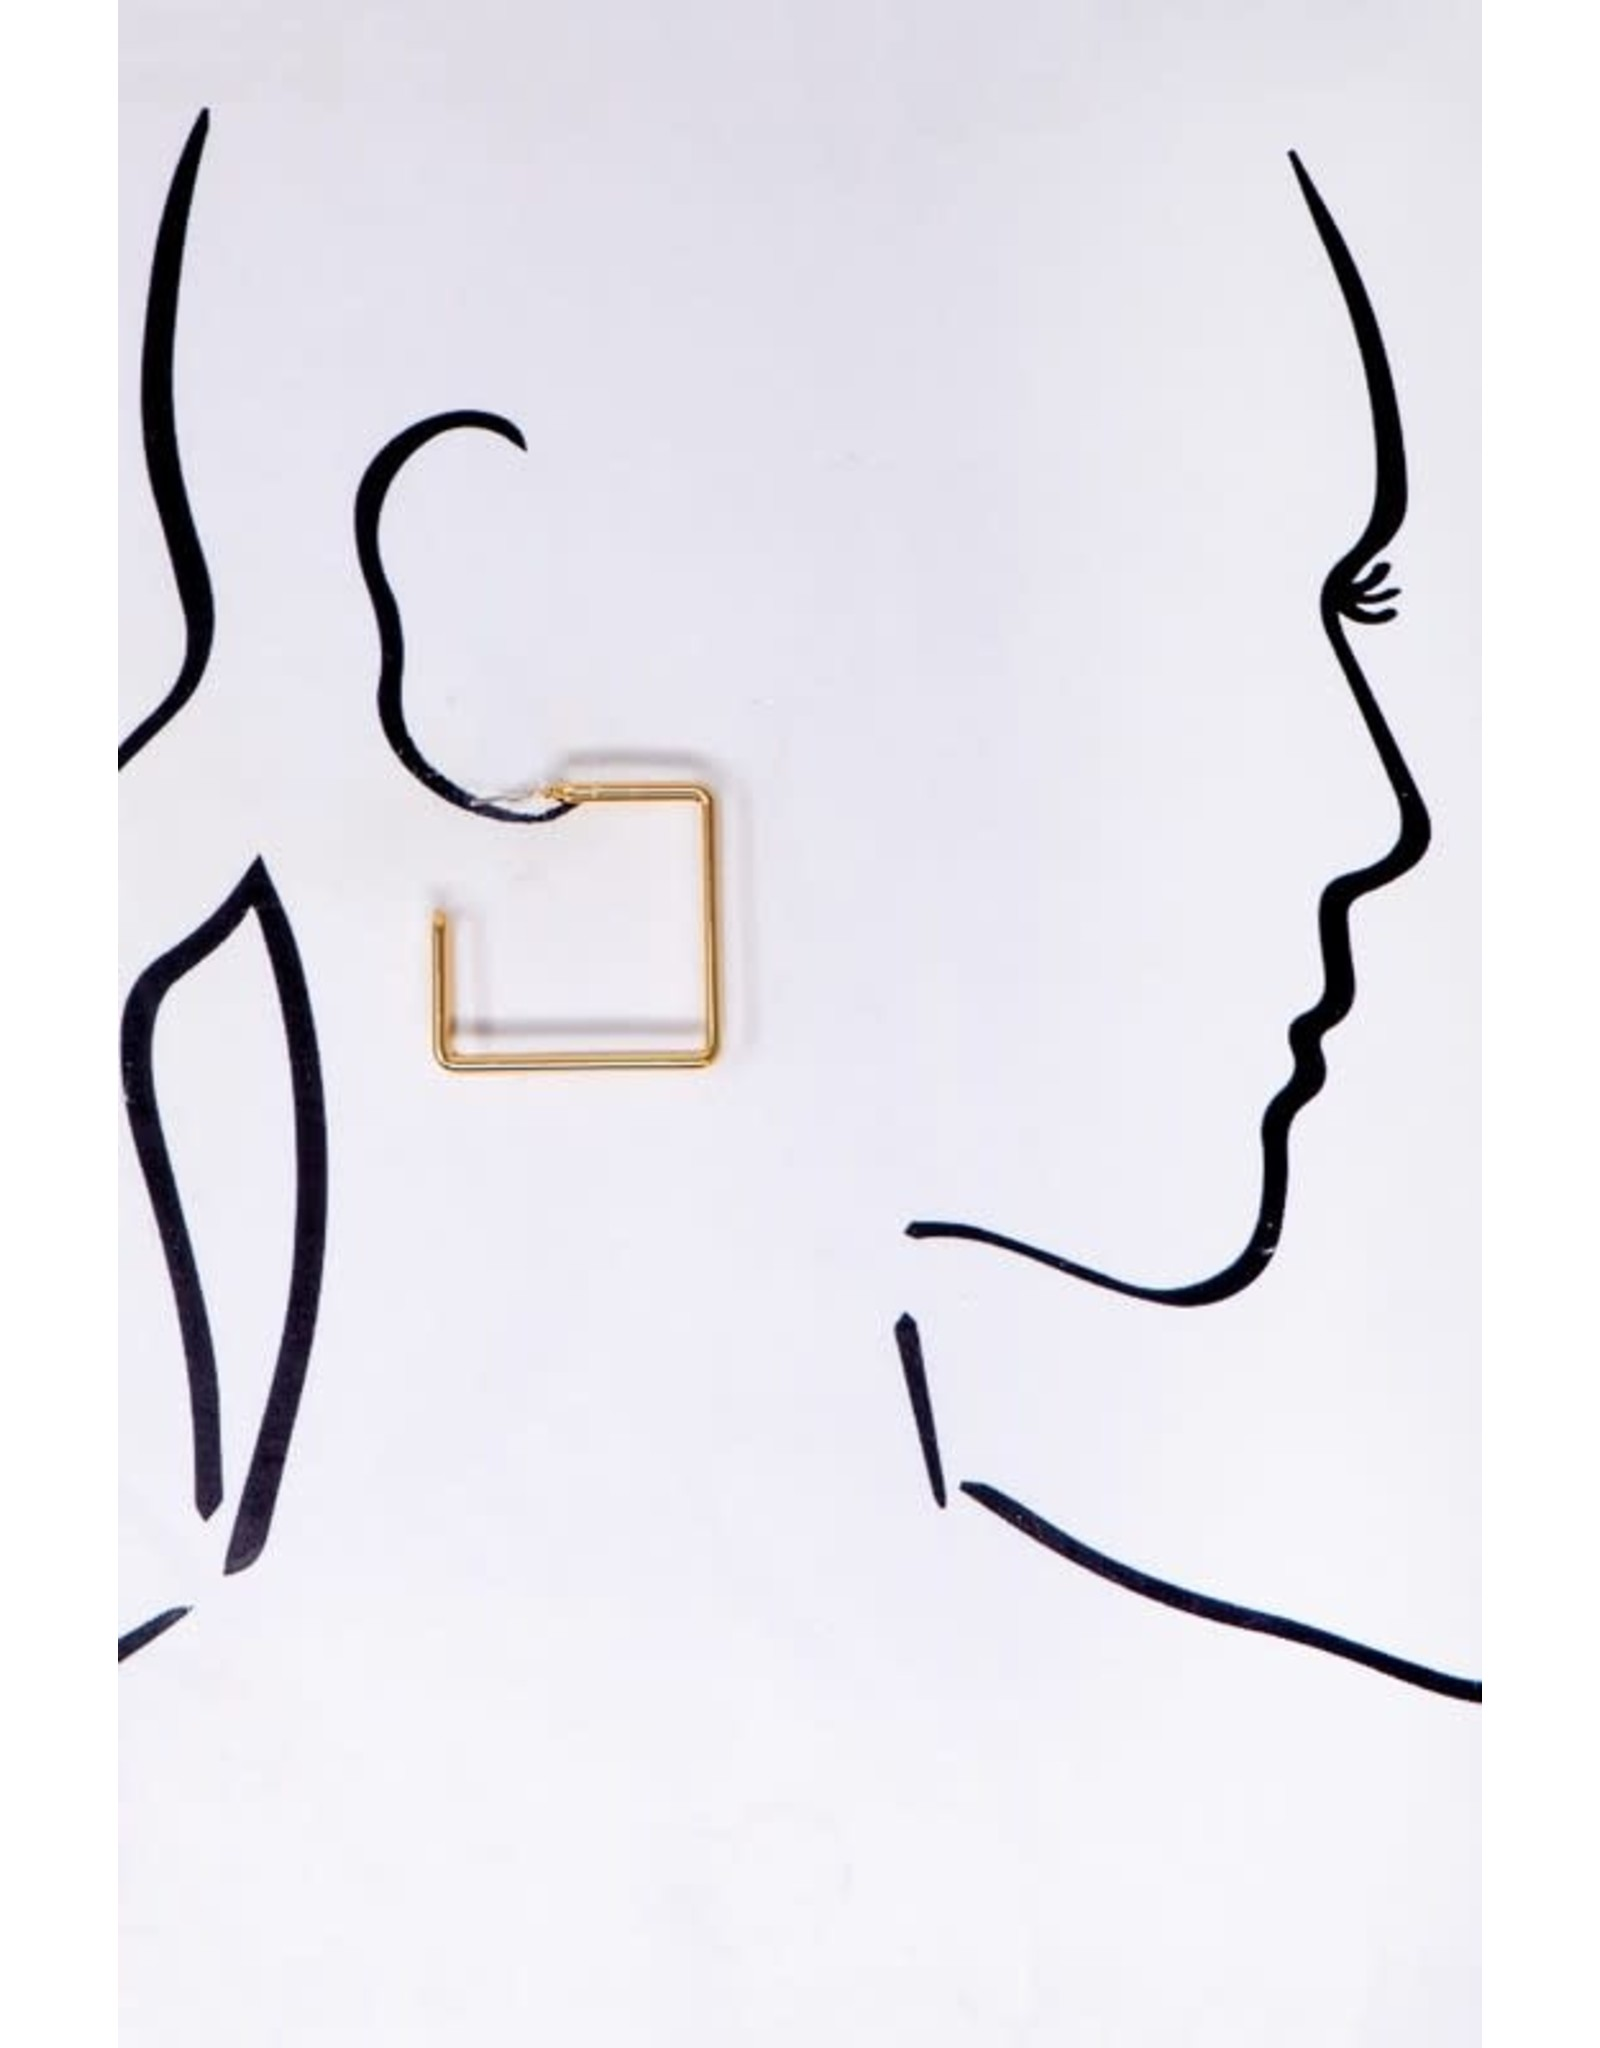 """Size: 1.5"""" Smooth And Shiny Double Layer Square Hoop Earrings. Made Of Metal Wire - Color: Gold"""